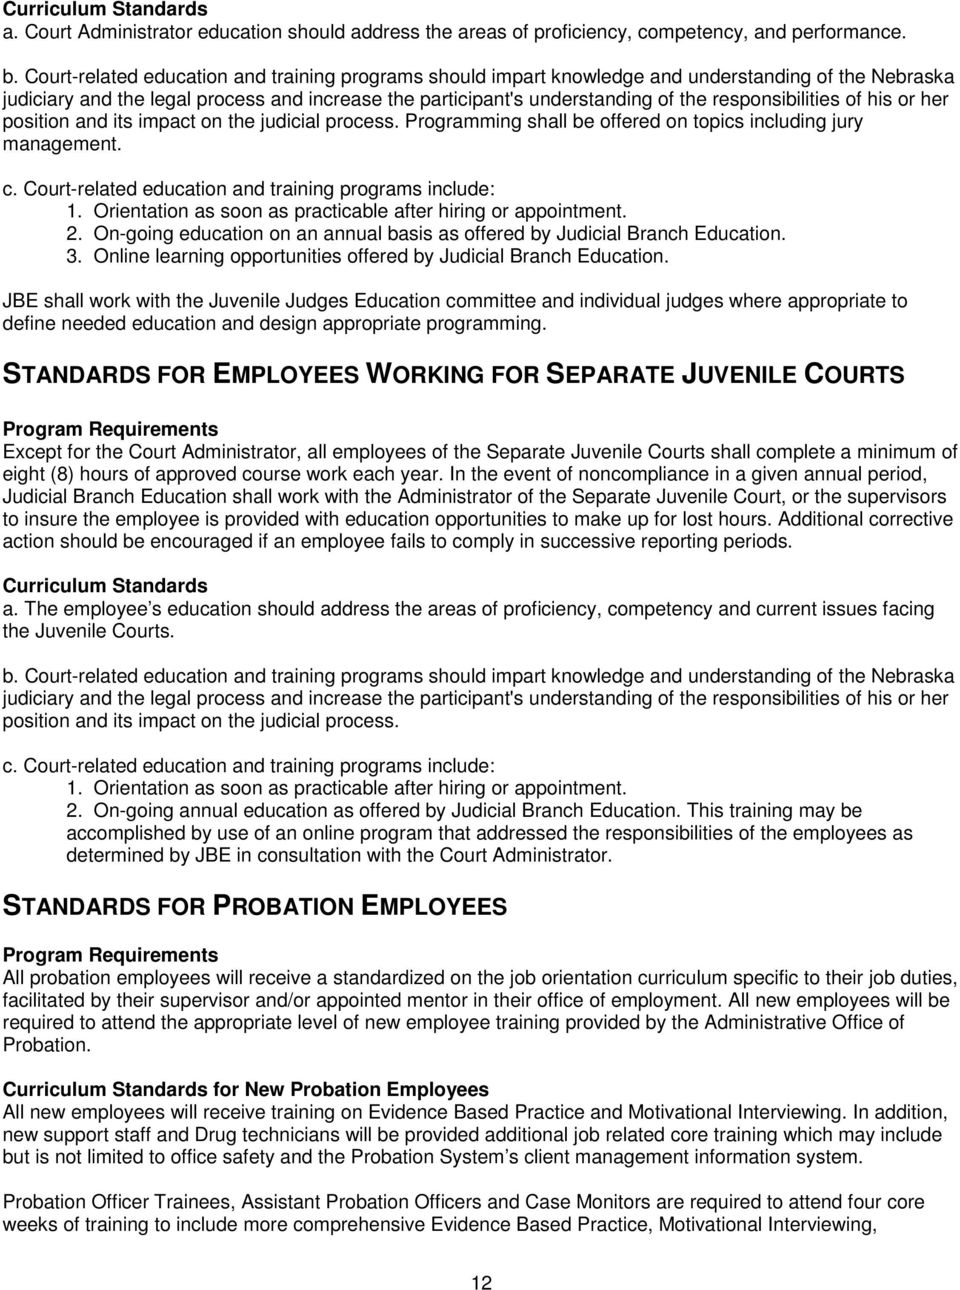 JBE shall work with the Juvenile Judges Education committee and individual judges where appropriate to define needed education and design appropriate programming.